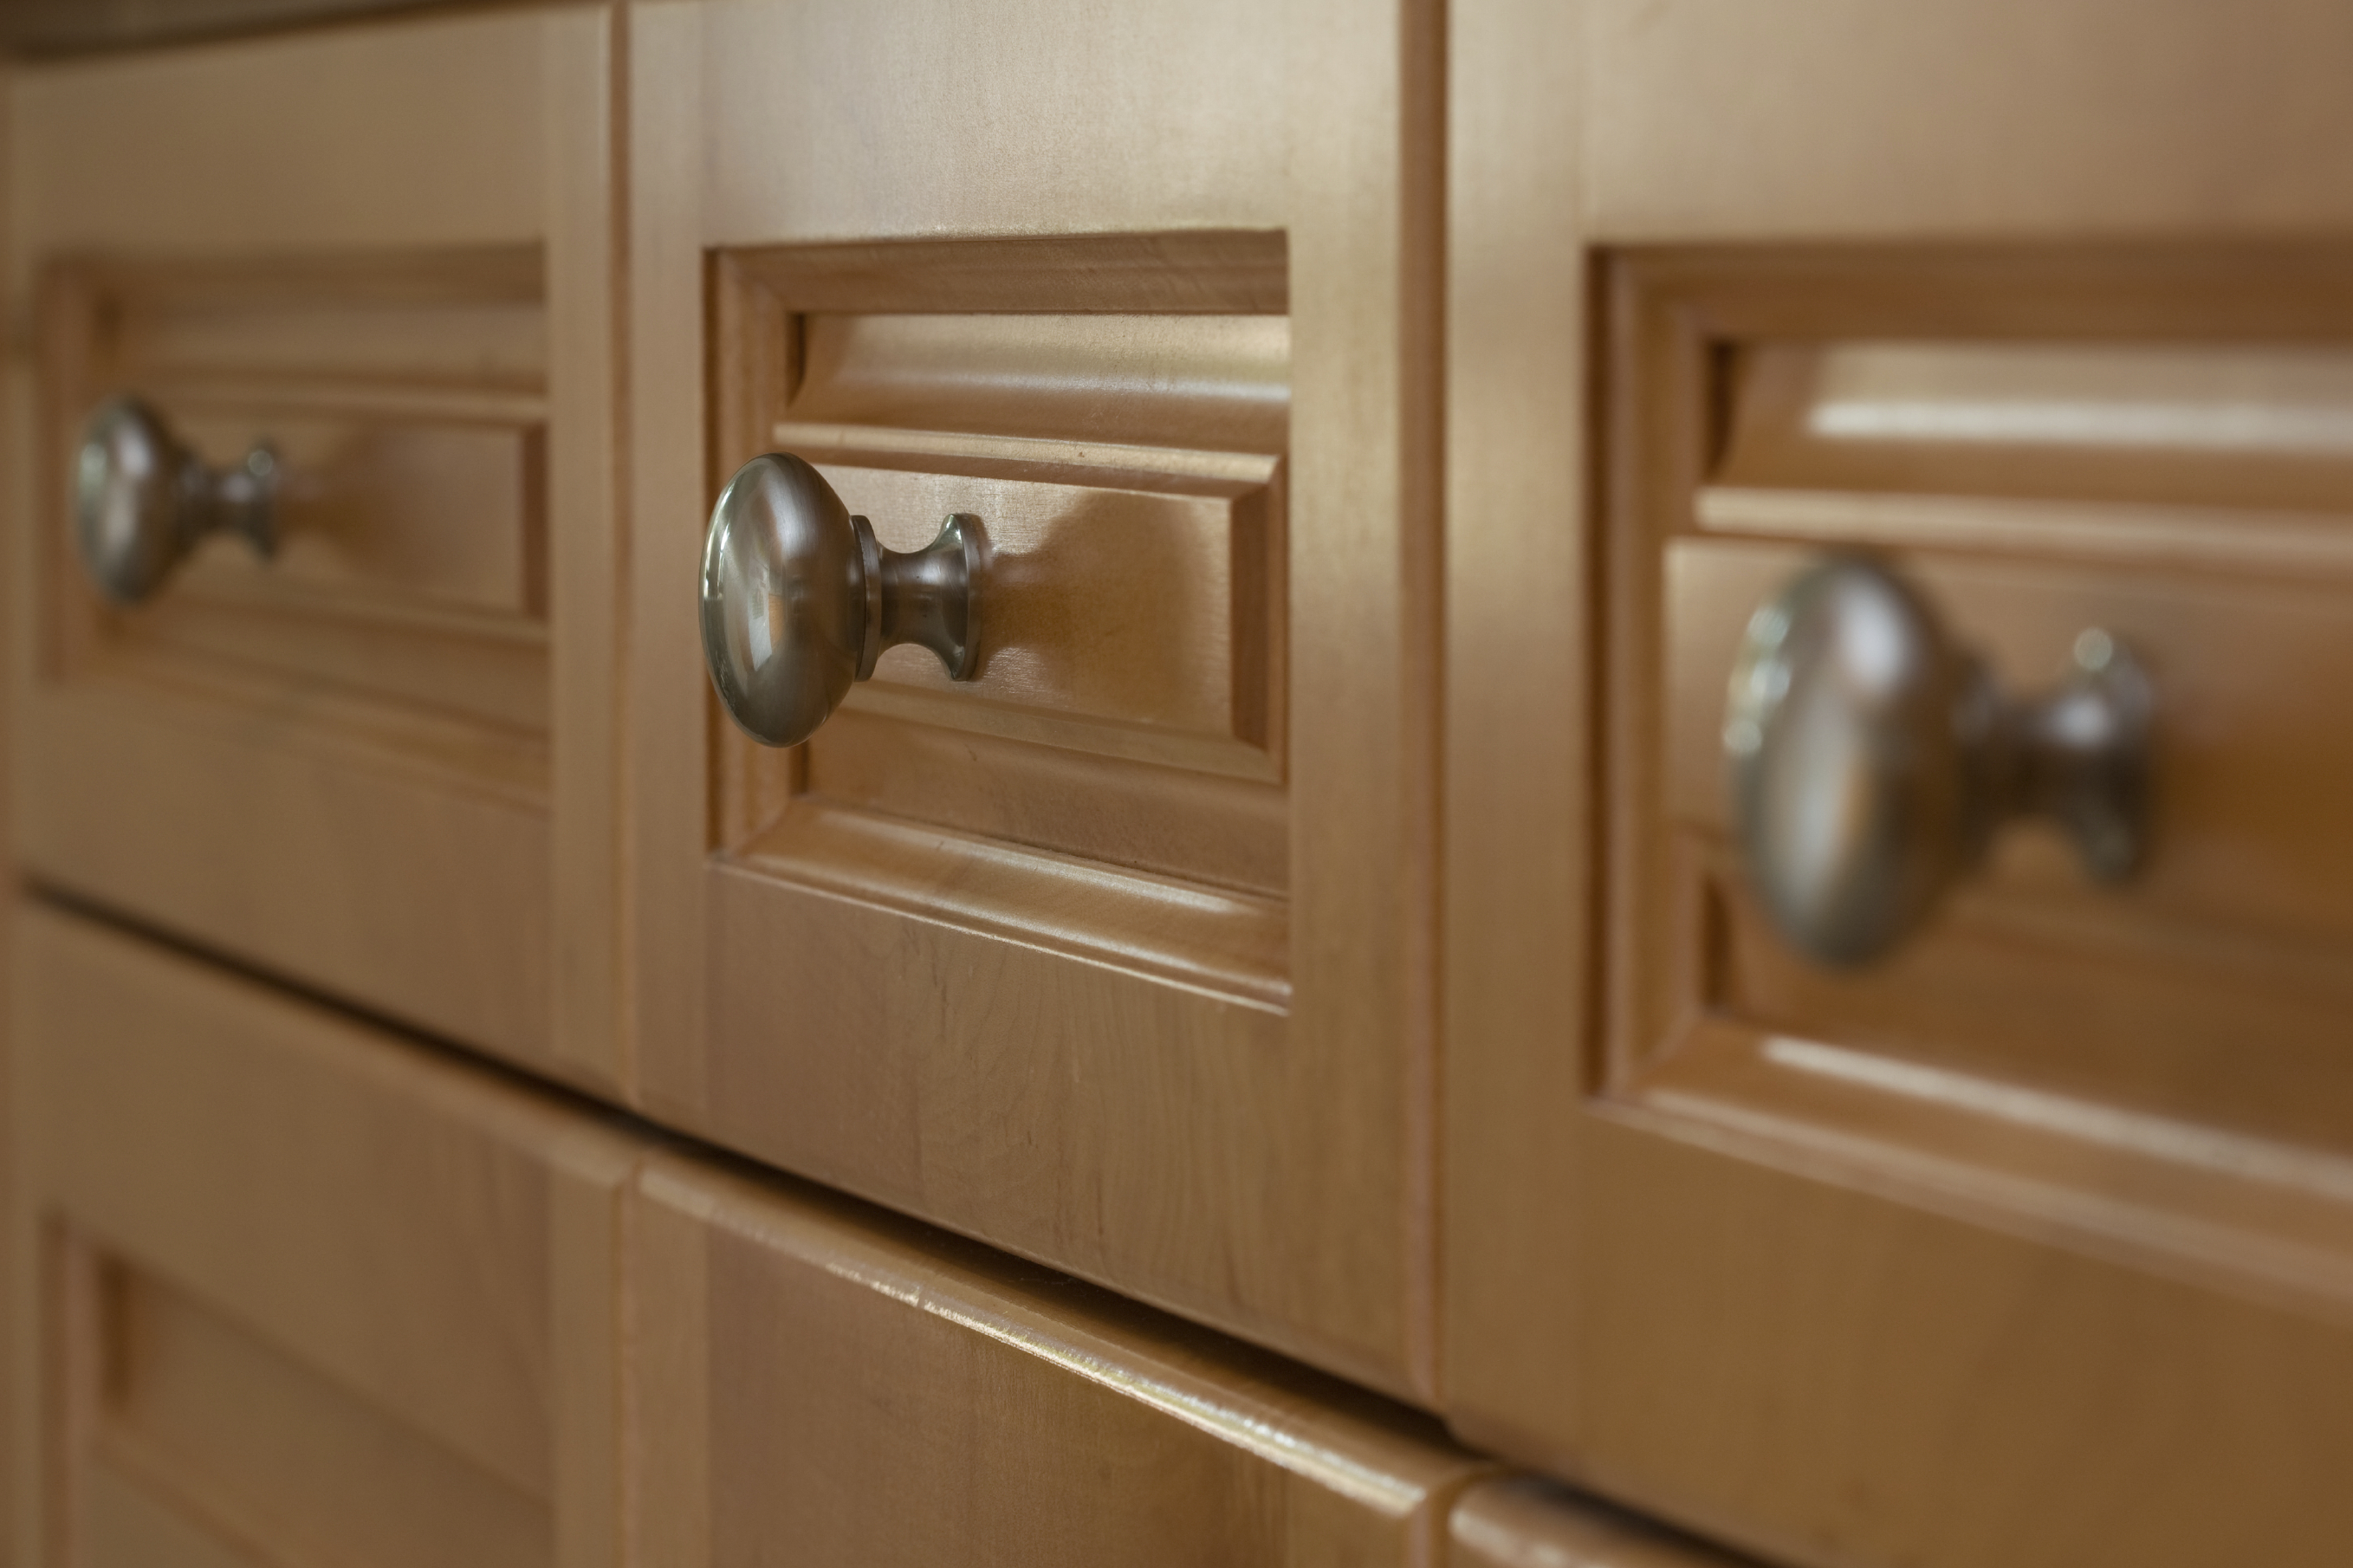 A reader asks what is the correct size for cabinet handles for Kitchen cabinets handles